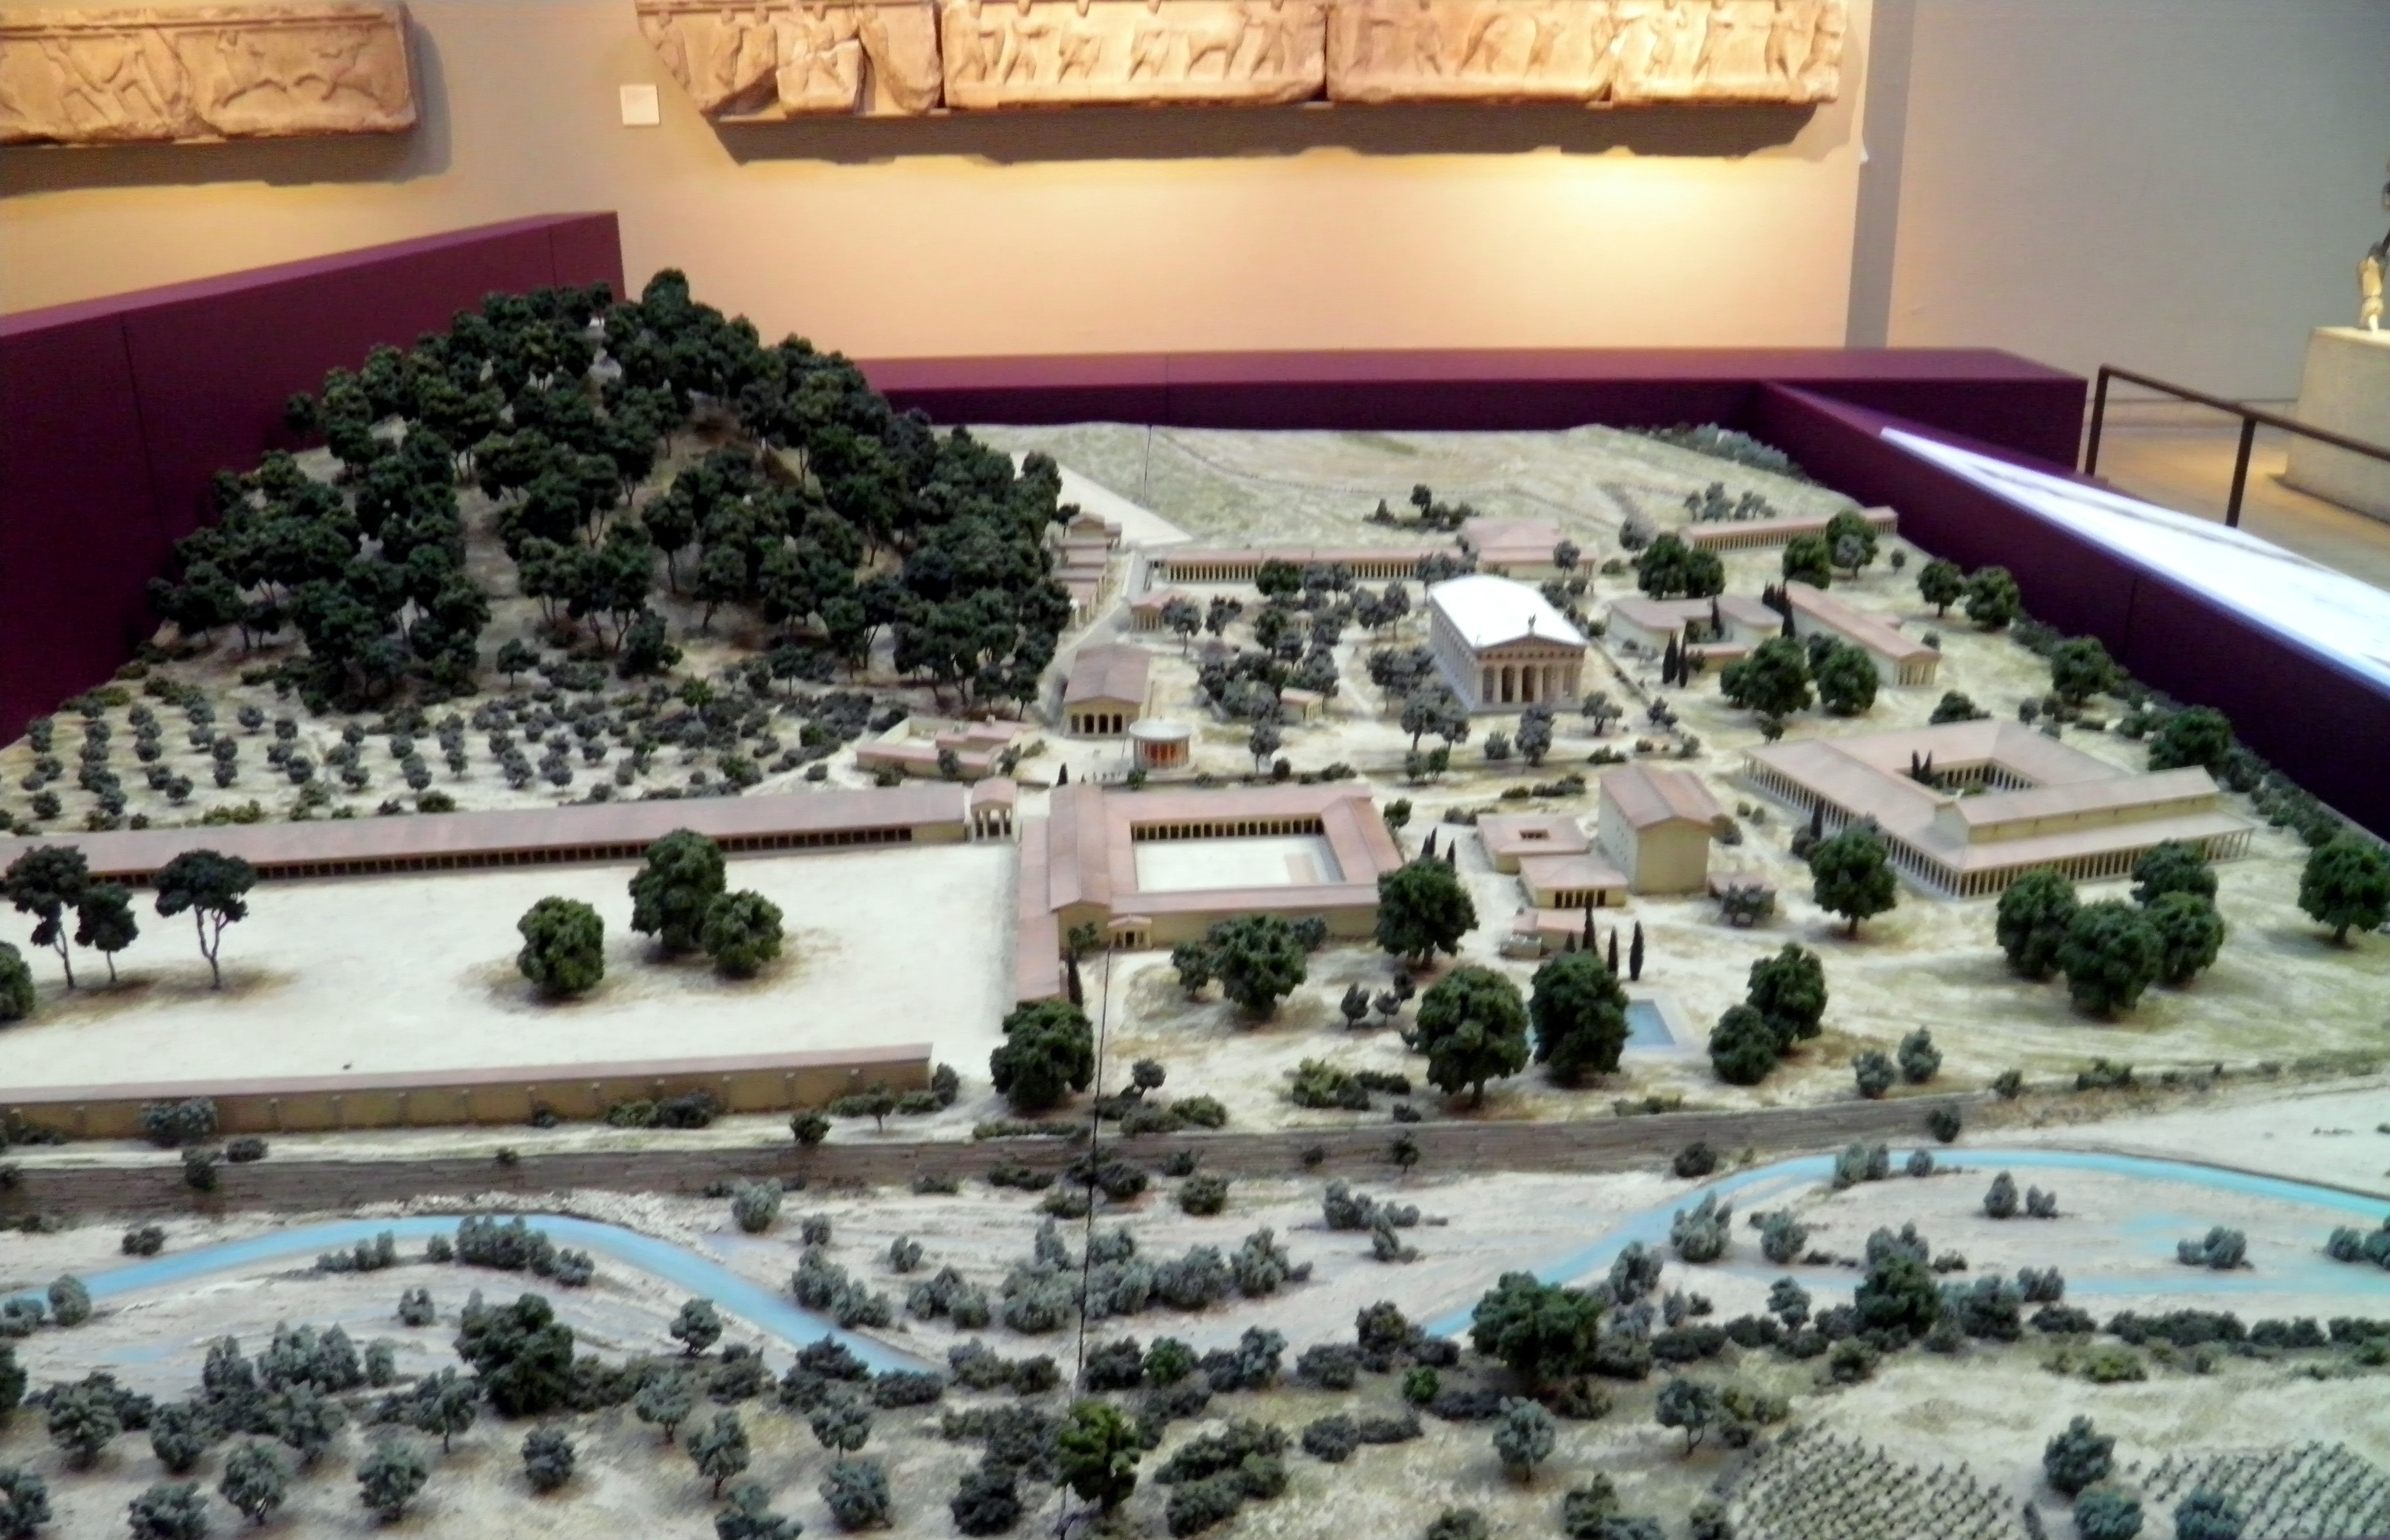 File:Model of ancient Olympia, British Museum2.jpg - Wikimedia Commons